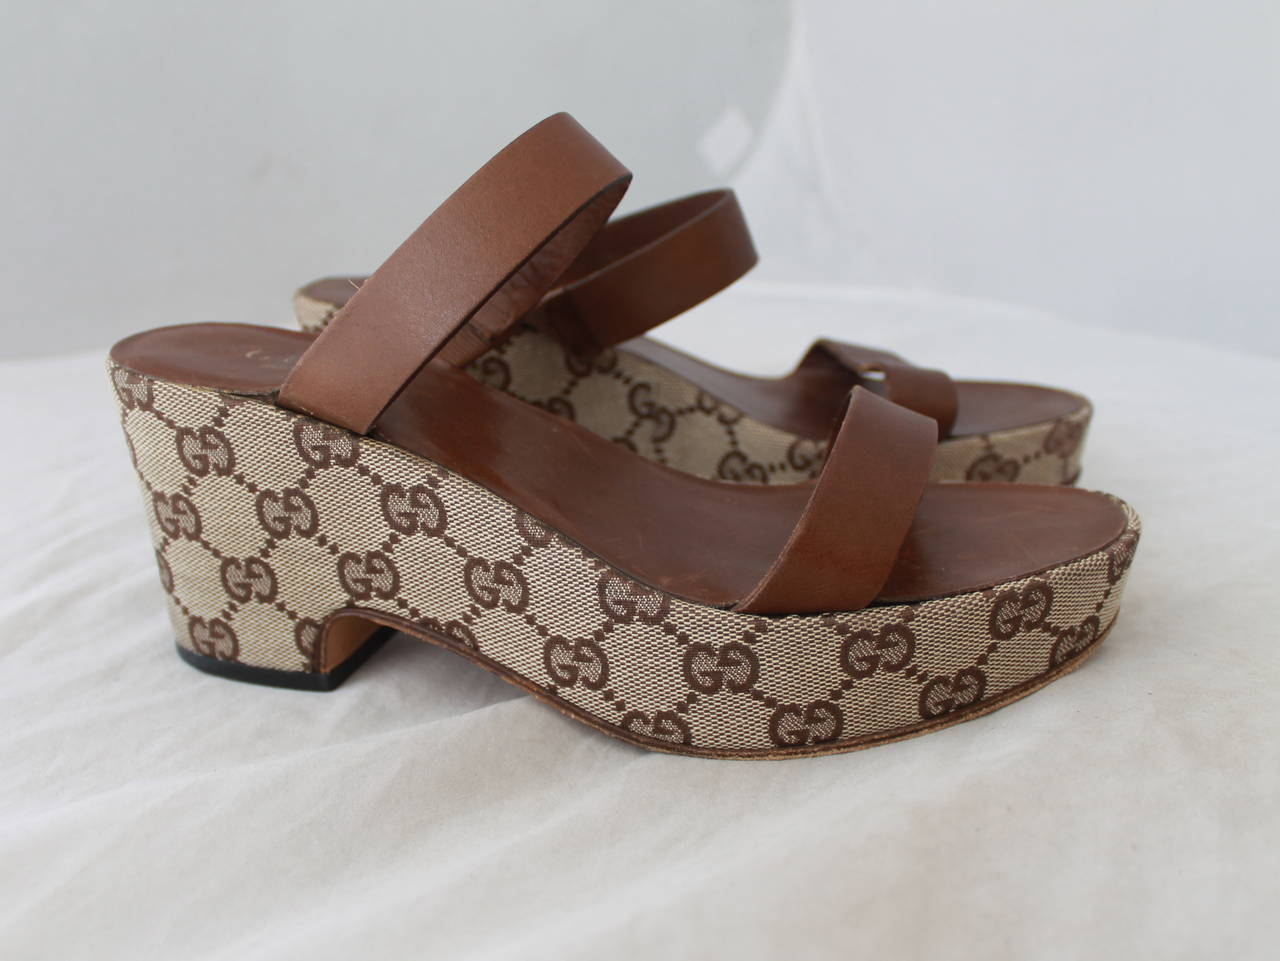 Gucci Brown Monogram Wedge Sandal - 6. These wedges are in good condition with bottom wear and markings on the inside leather (where the foot is on top of).